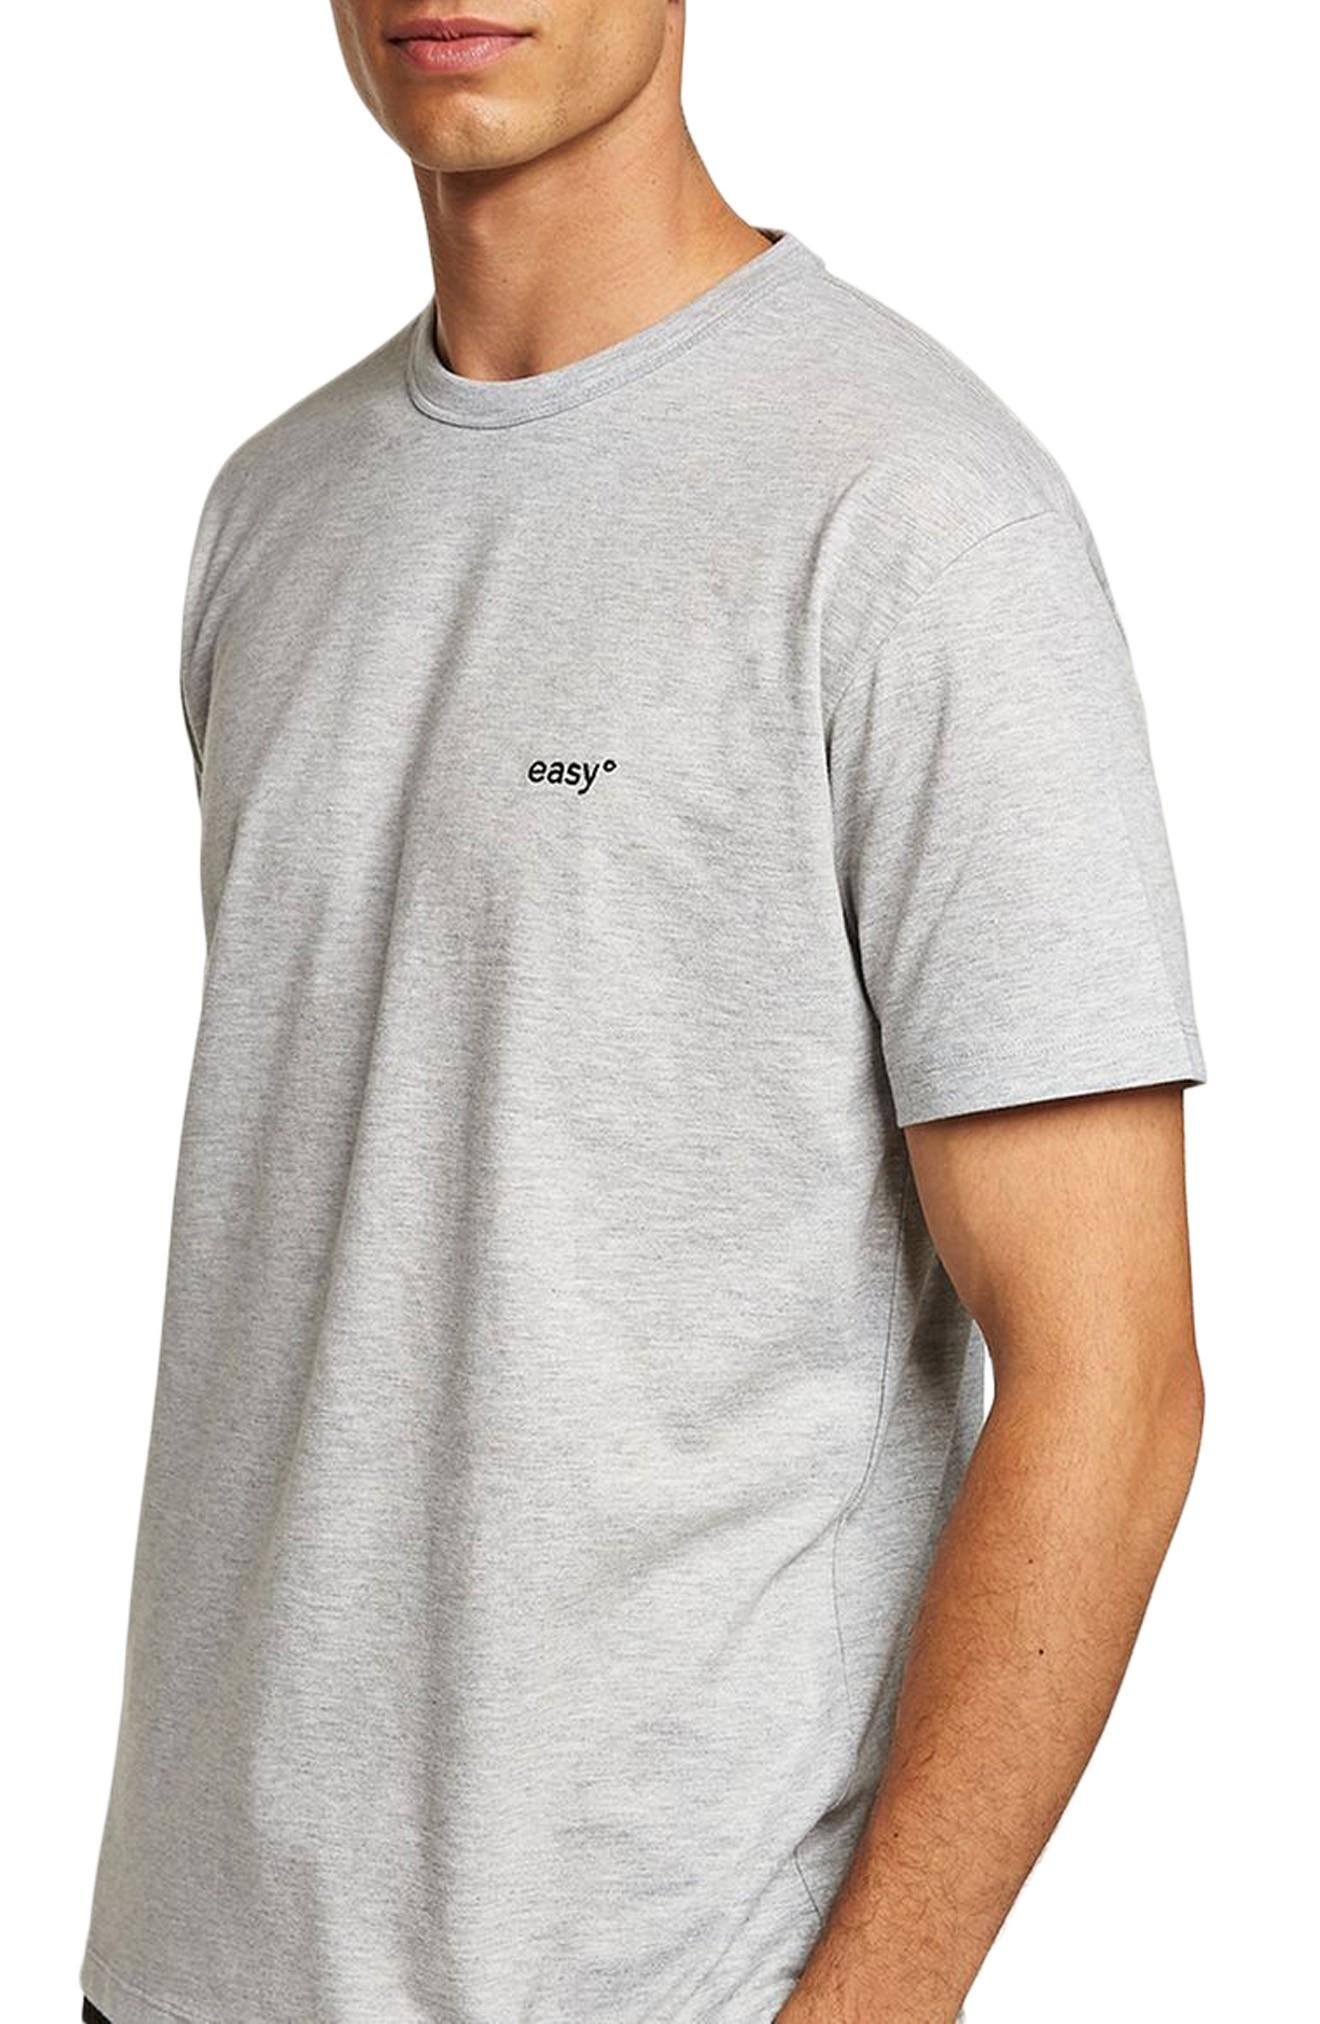 Topman Oversize Embroidered Easy T-shirt In Grey